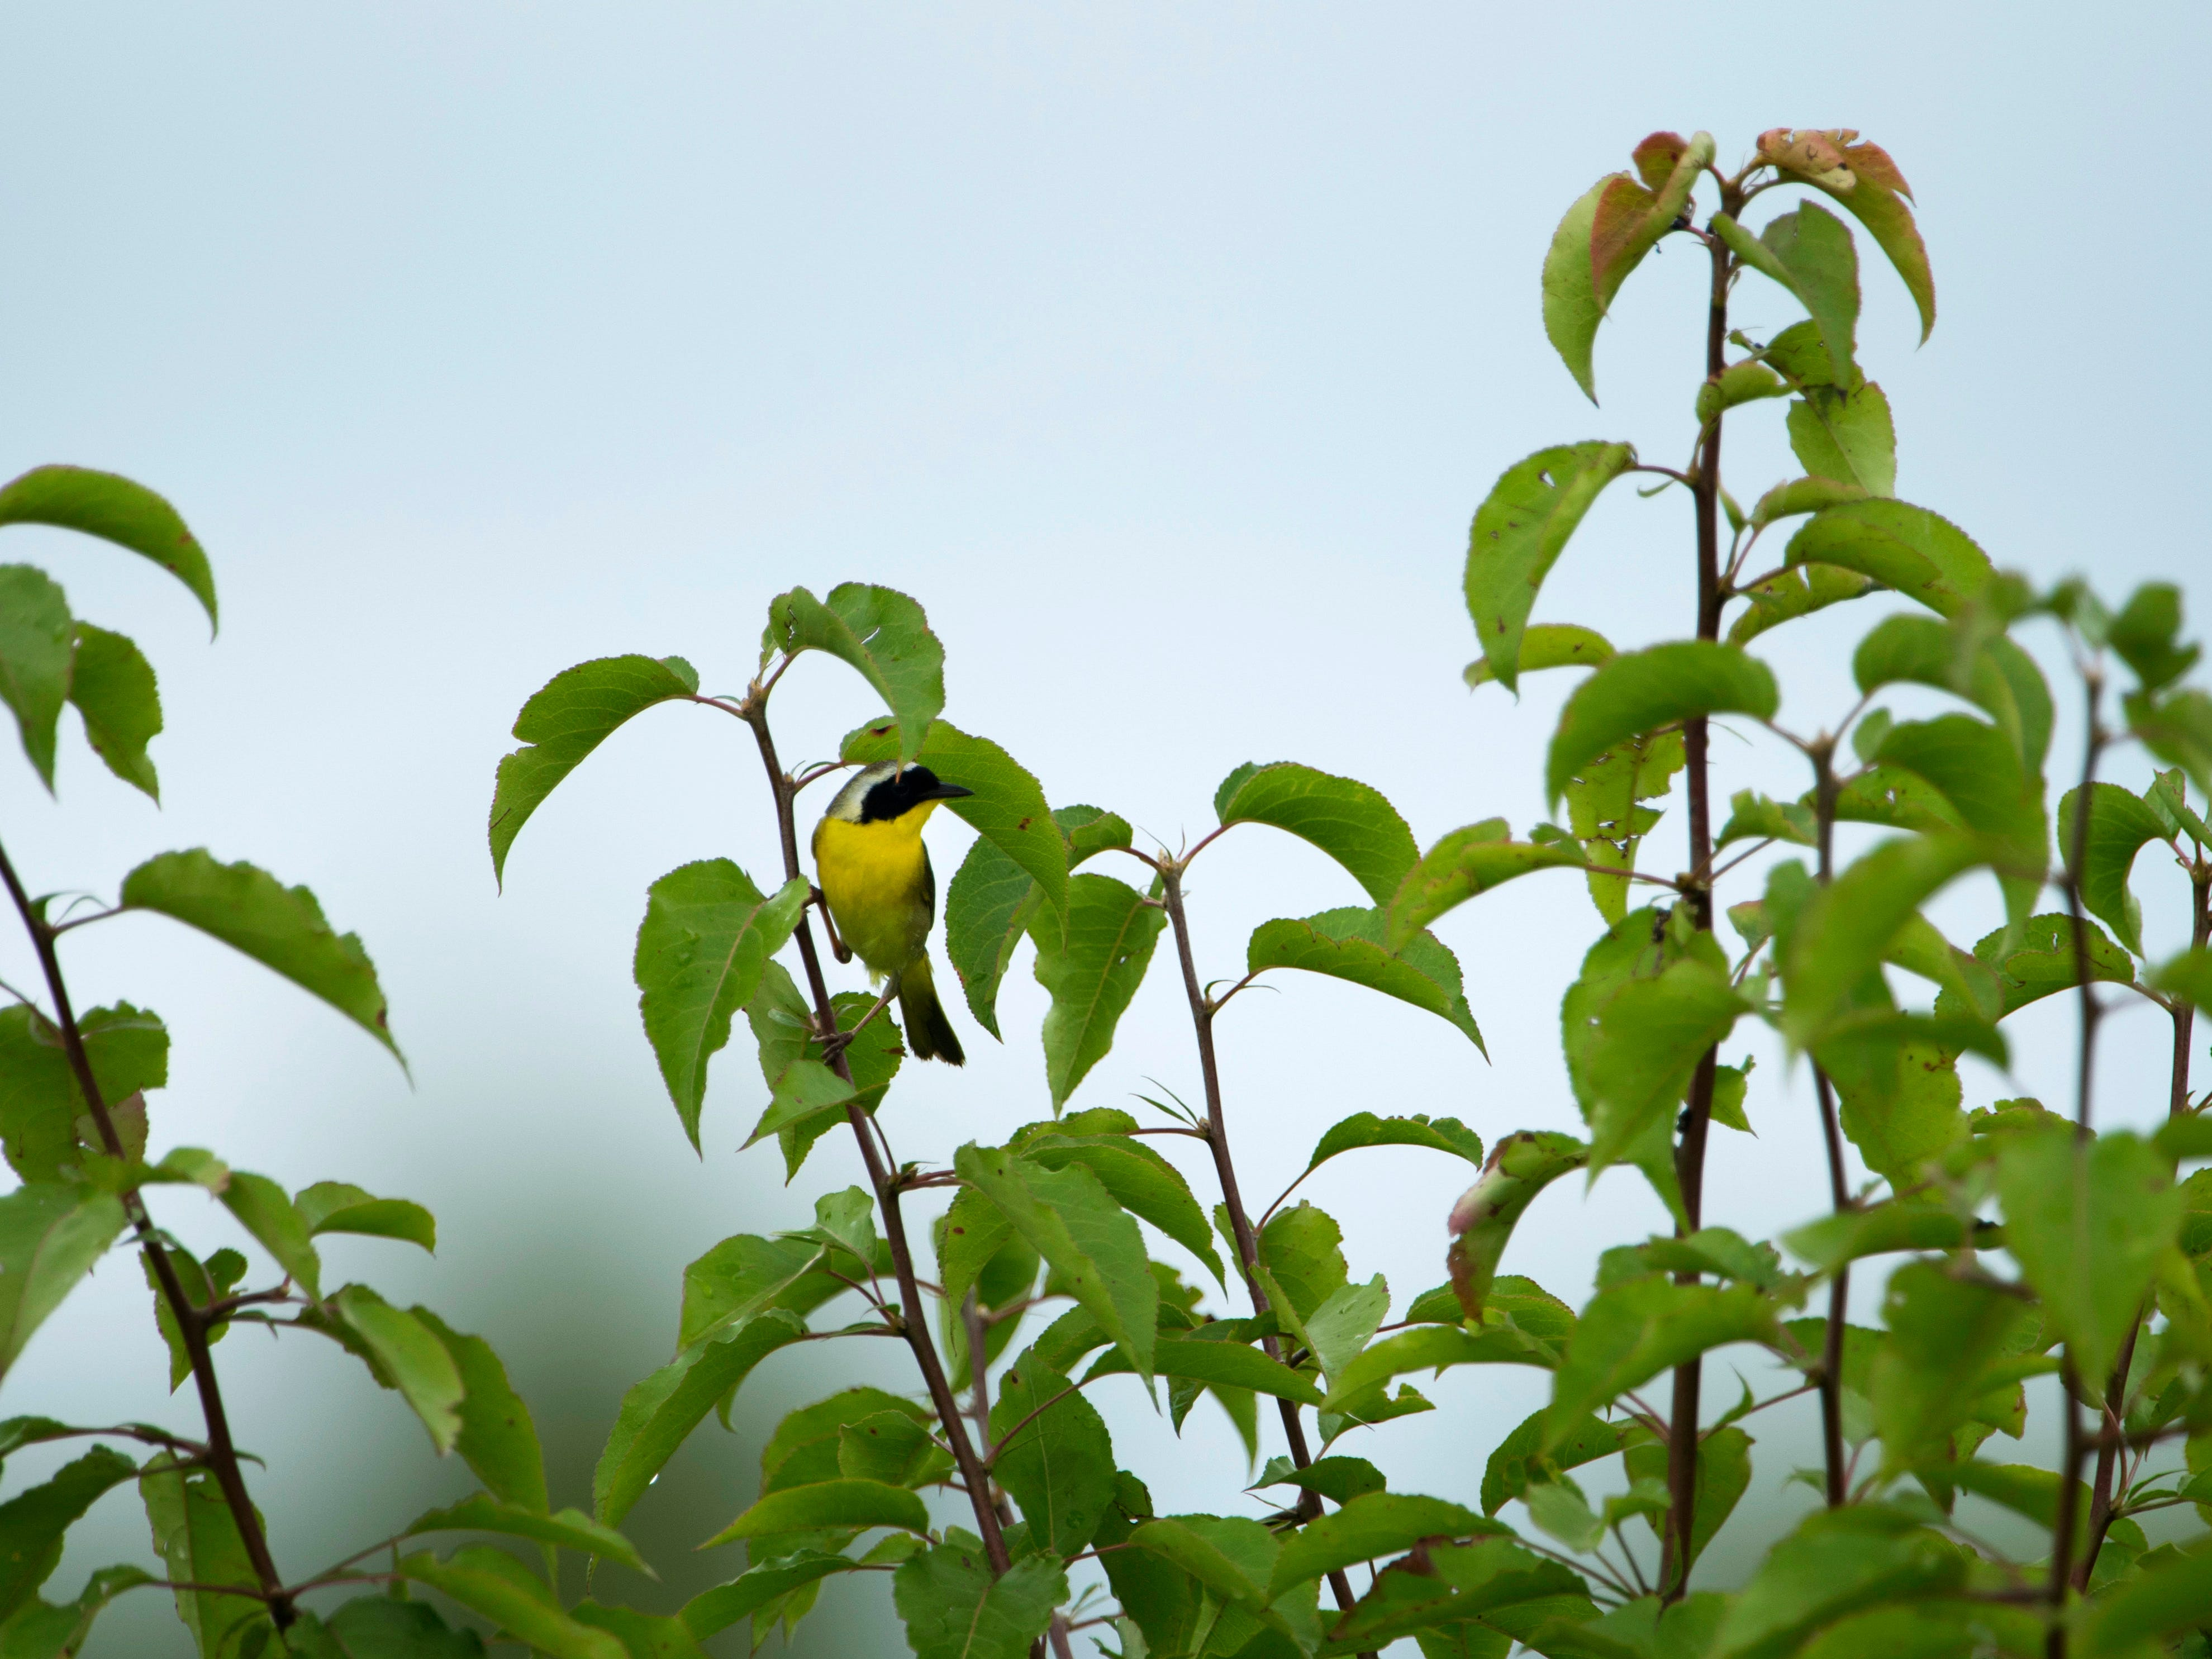 A common yellowthroat clings to a branch at the Bluegrass Fish and Wildlife Area in Warrick County in late June.